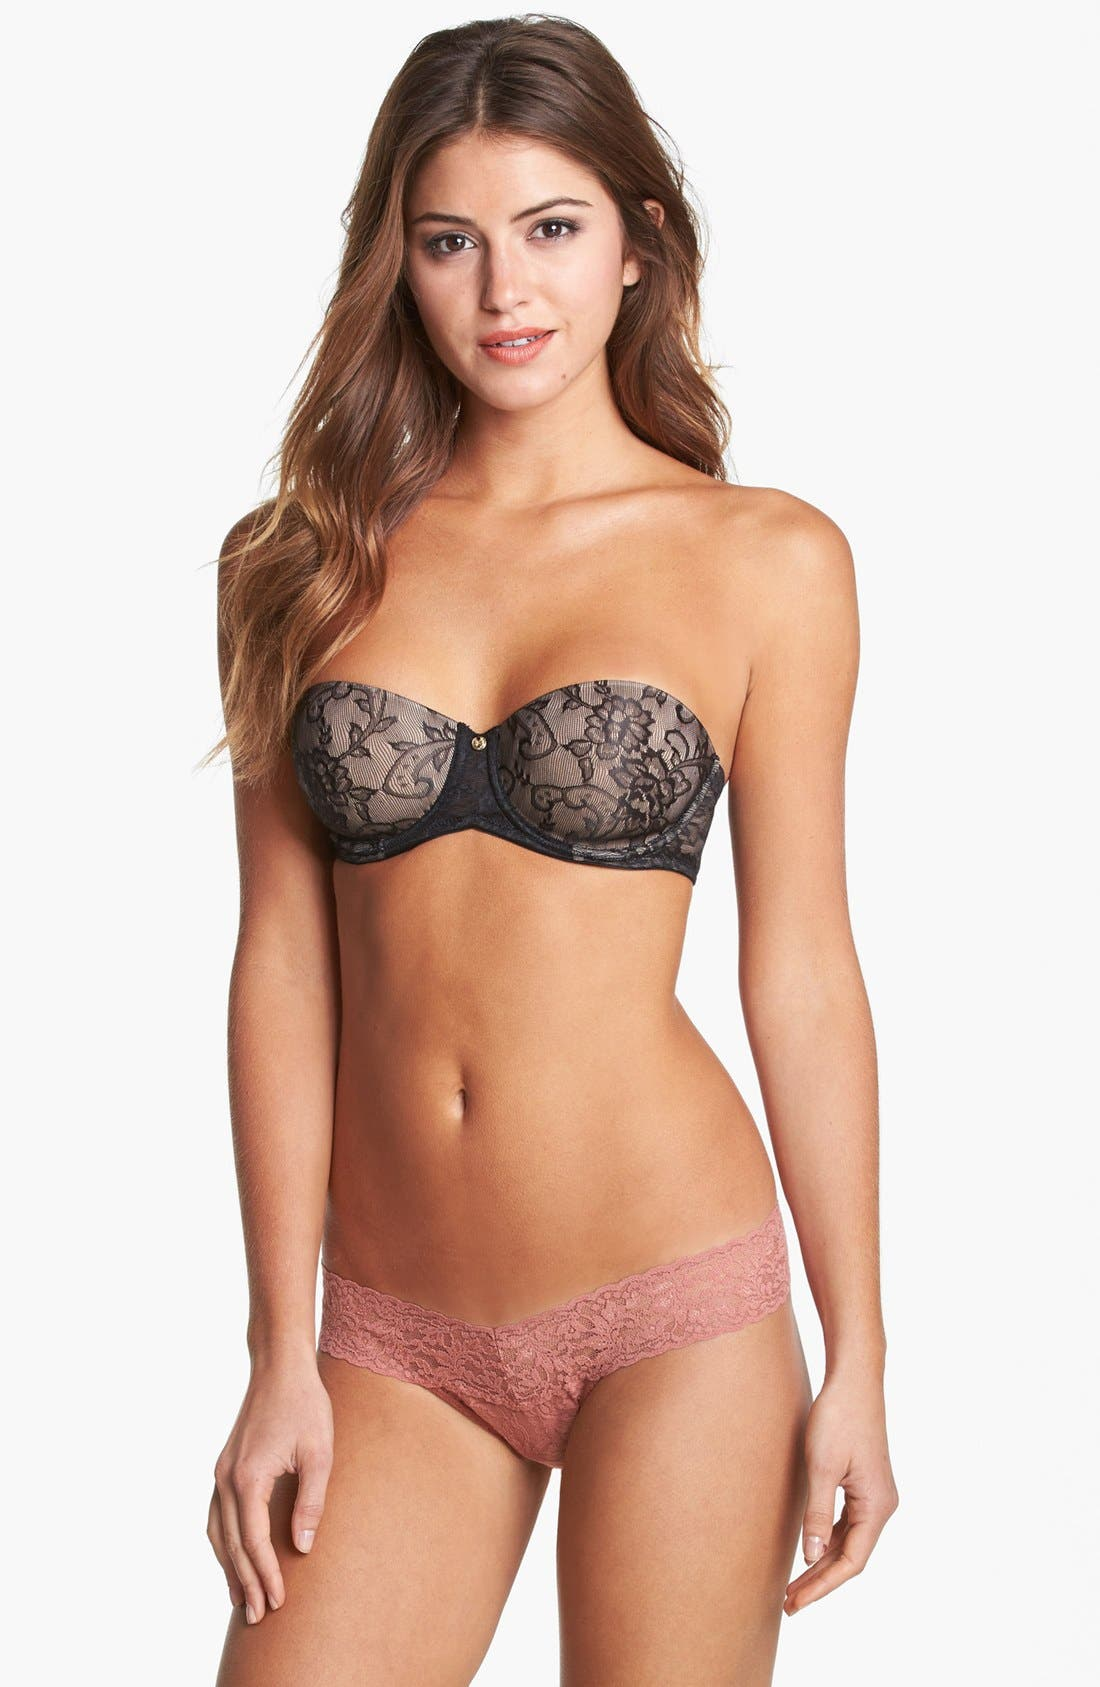 'Calais' Strapless Bra,                             Alternate thumbnail 5, color,                             005